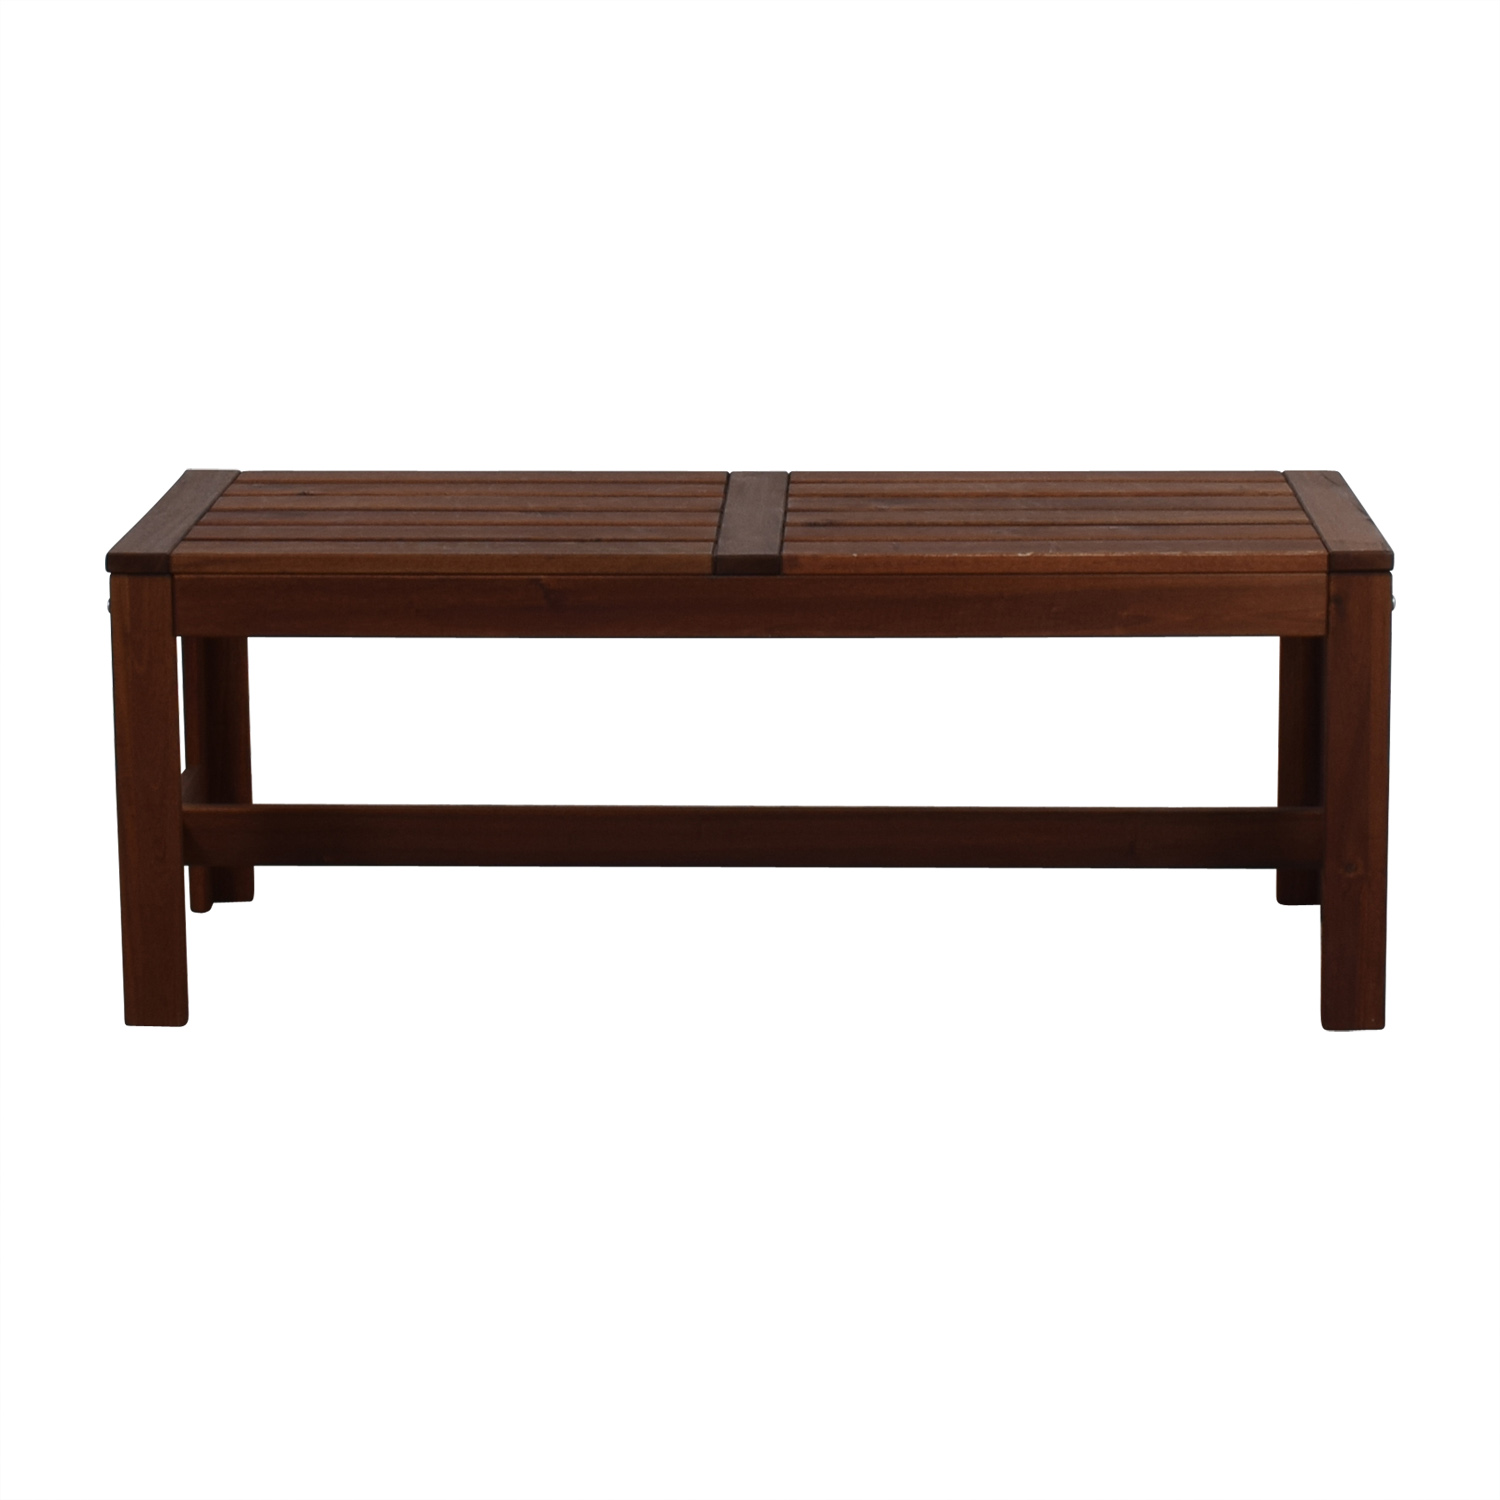 Downtown Furniture Downtown Furniture Wooden Bench used